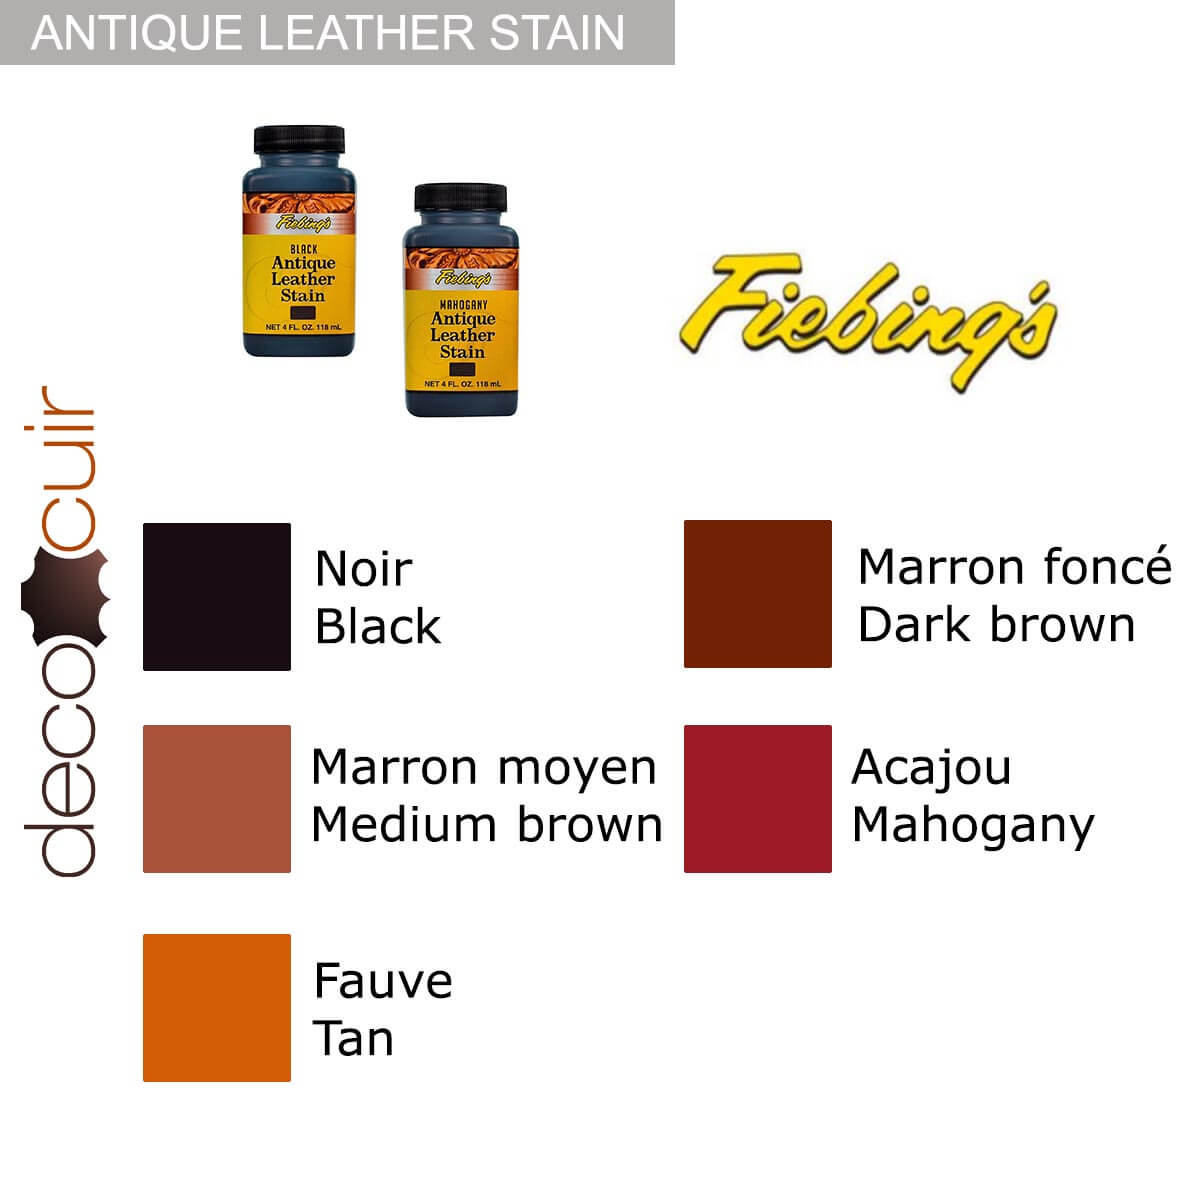 Patine après teinture - Antique Leather Stain Fiebing's - FAUVE / TAN